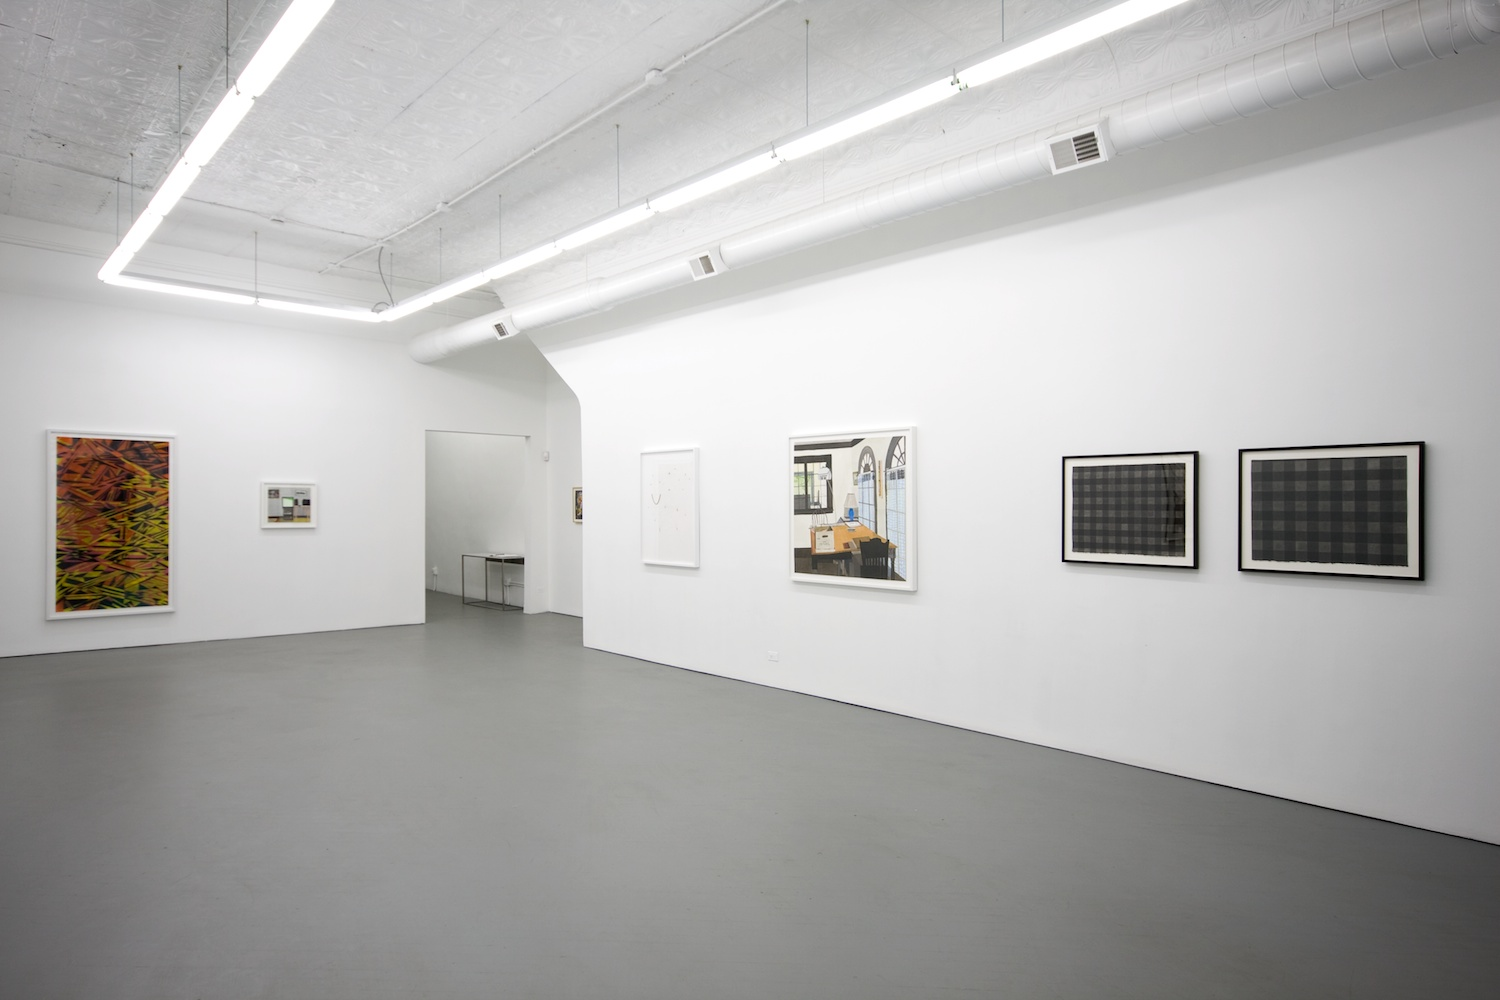 Michelle Grabner, Joanne Greenbaum, Suzanne McClelland, William J. O'Brien, Alex Olson, Jon Pestoni, Amanda Ross-Ho, Lisa Williamson, Jonas Wood Drawing 2010 Shane Campbell Gallery, Chicago Installation View